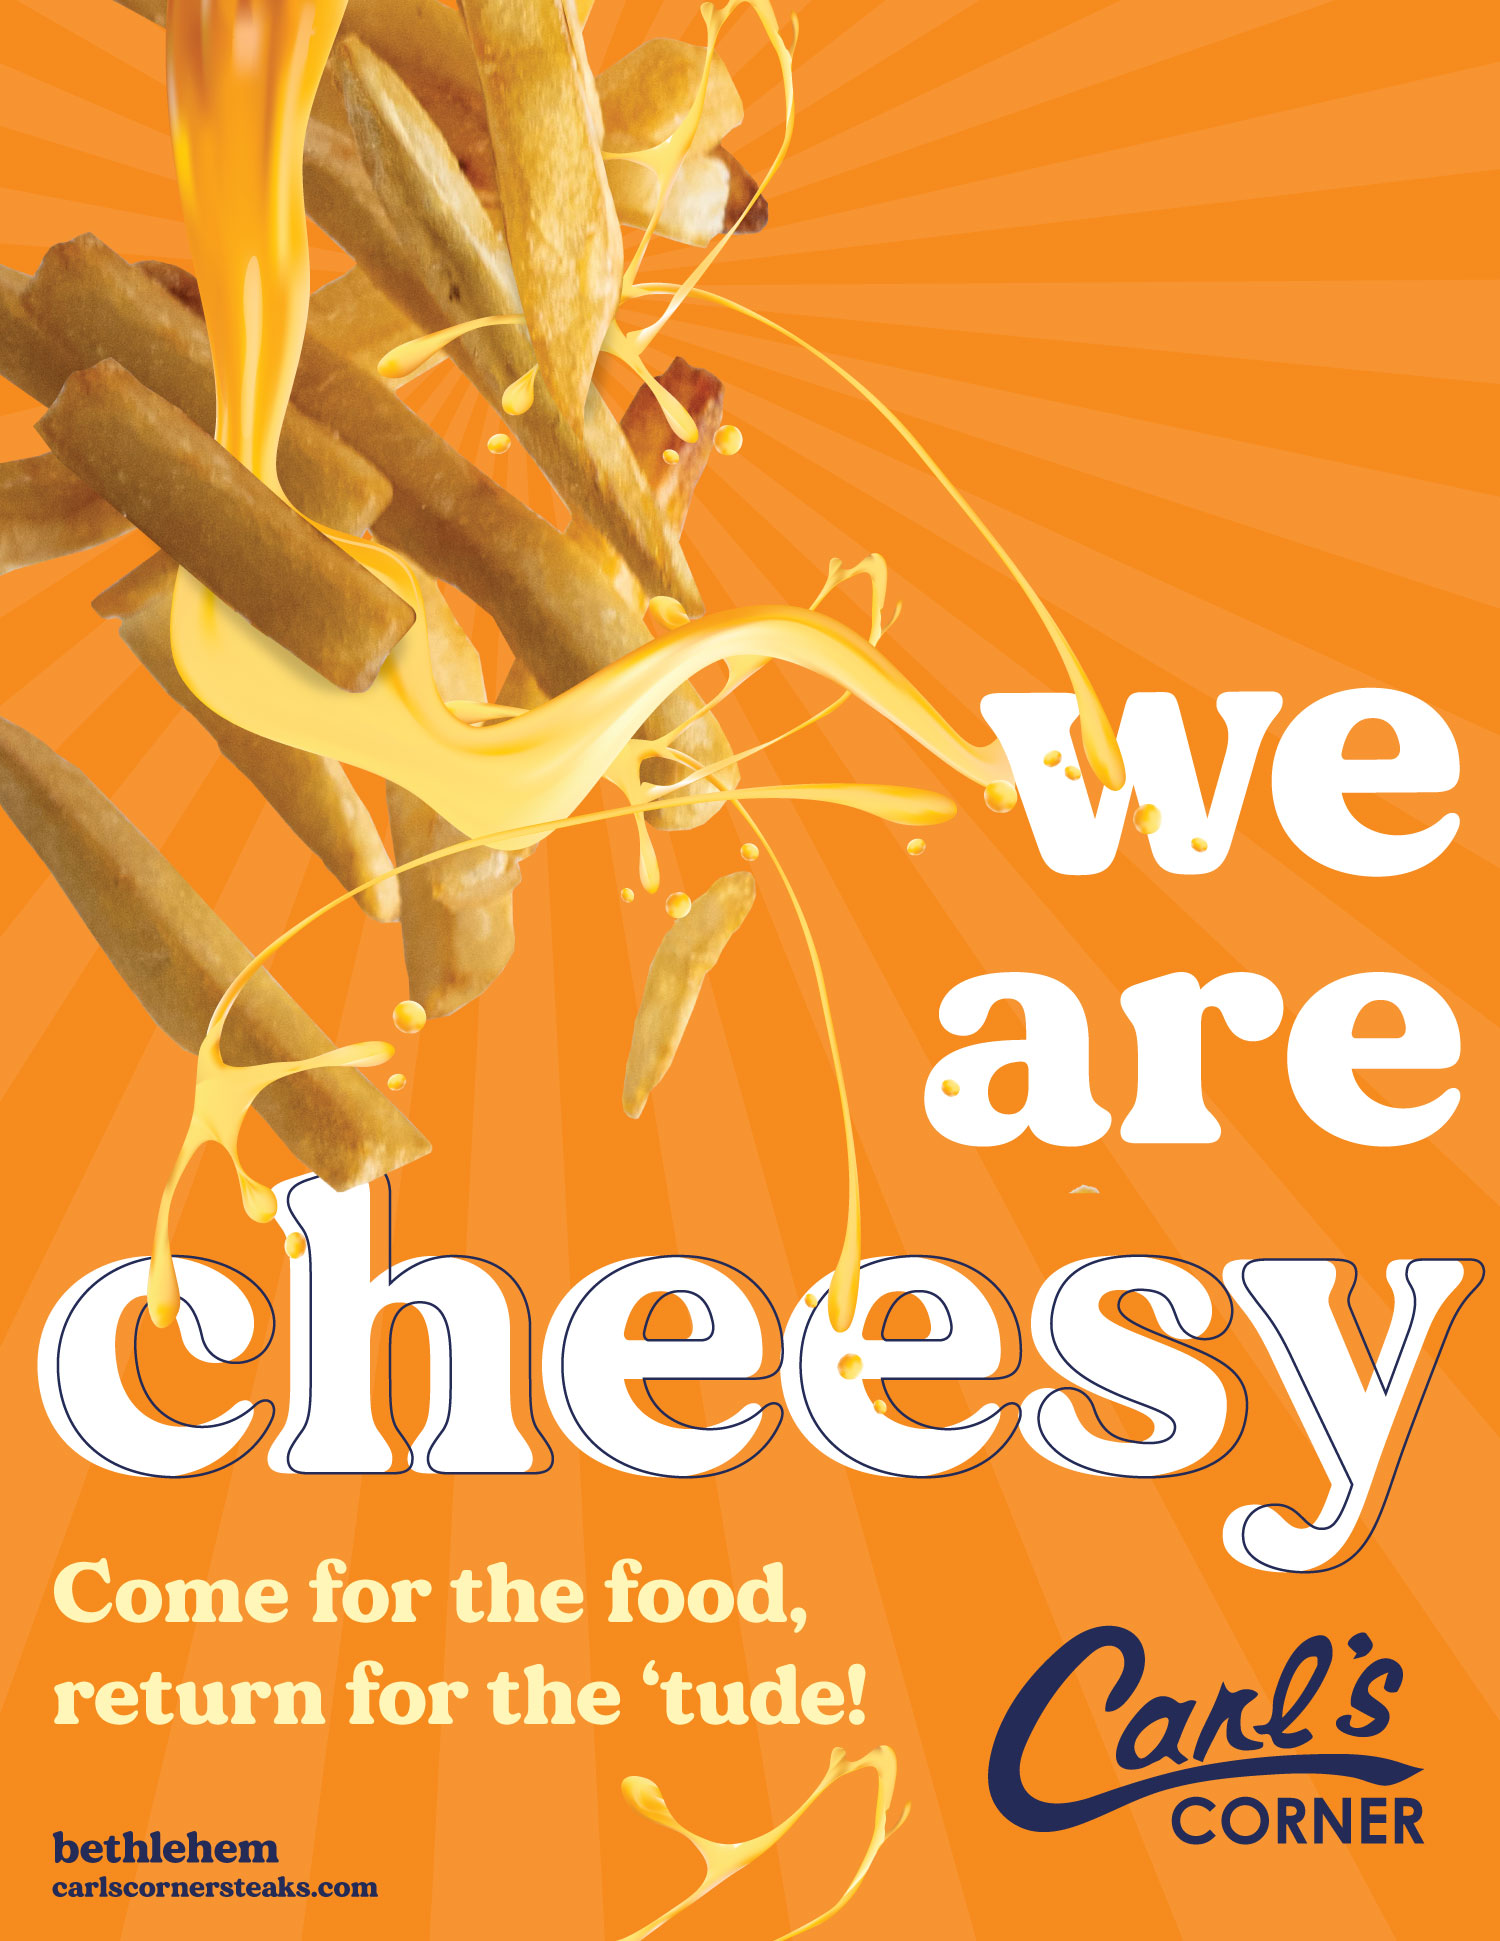 We Are Cheesy! Come for the food, return for the 'tude at Carl's Corner